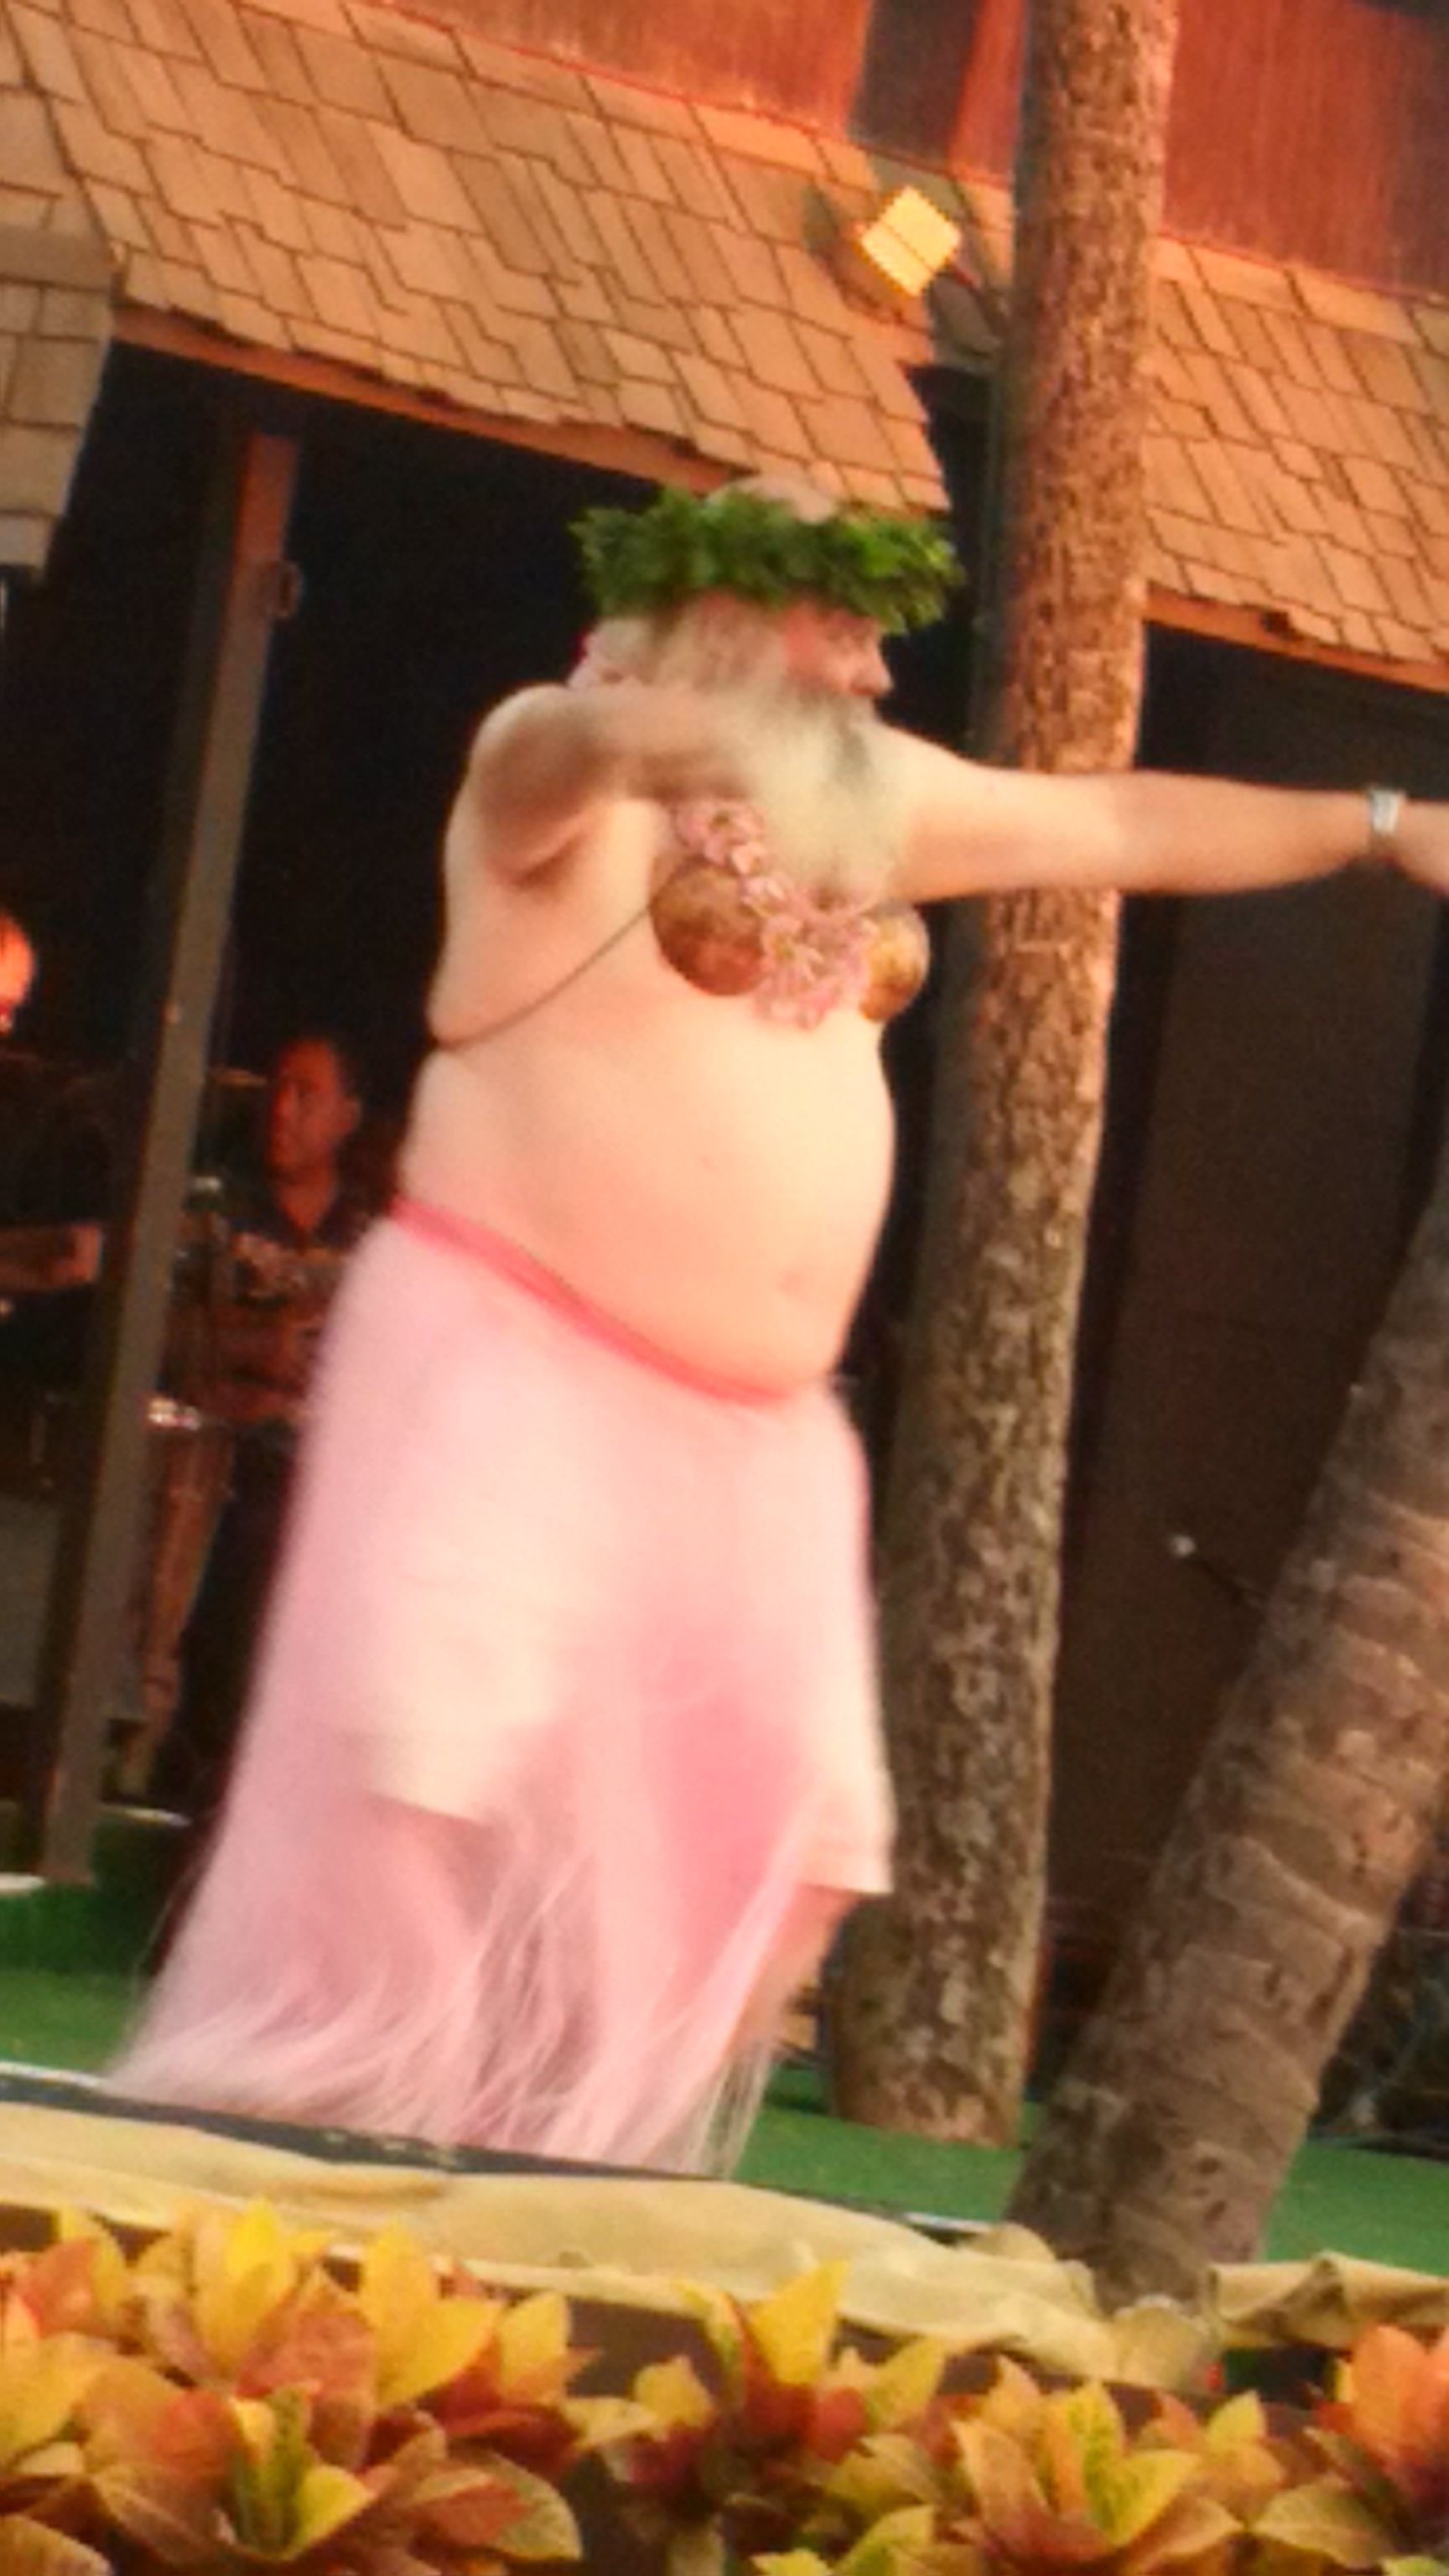 hawaii2014/Christensen.jpg